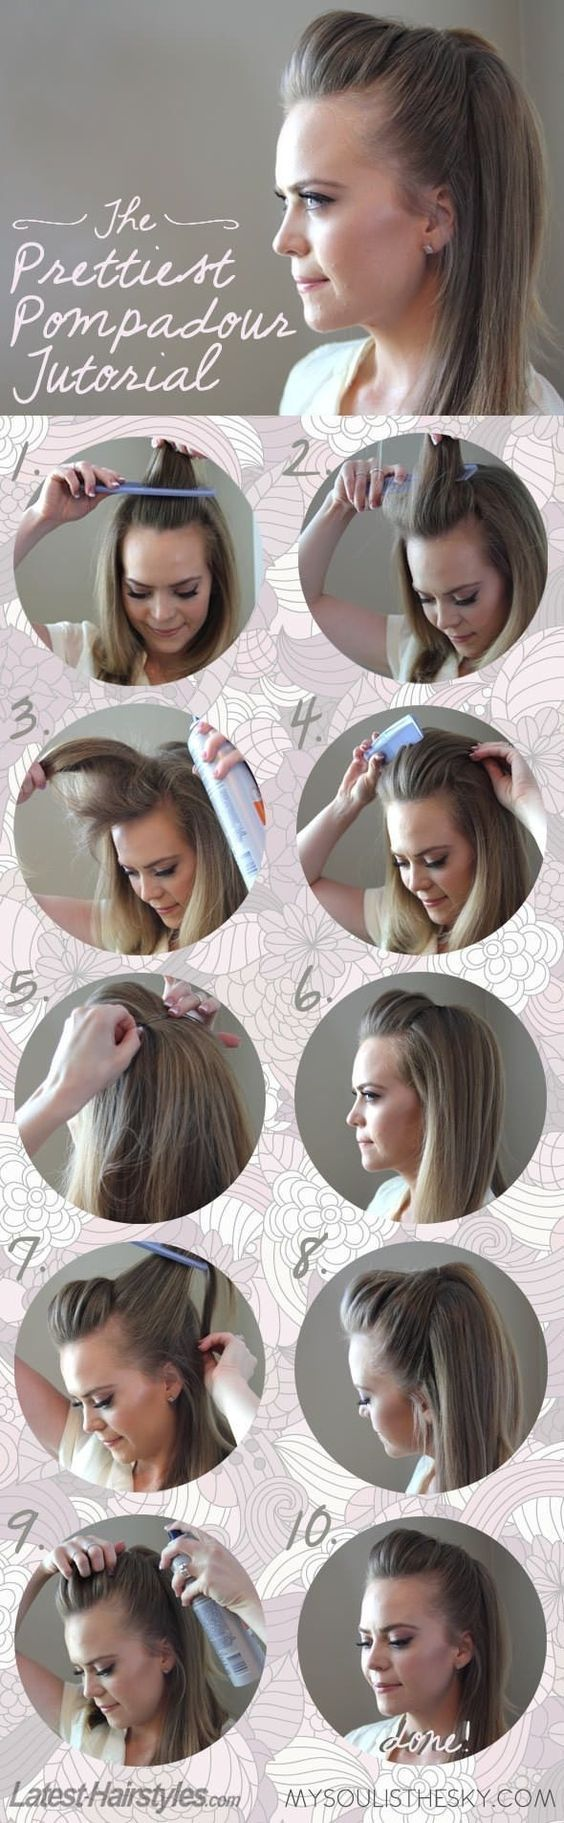 Professional hairstyles differ depending on the job, but the most important thing to remember in any